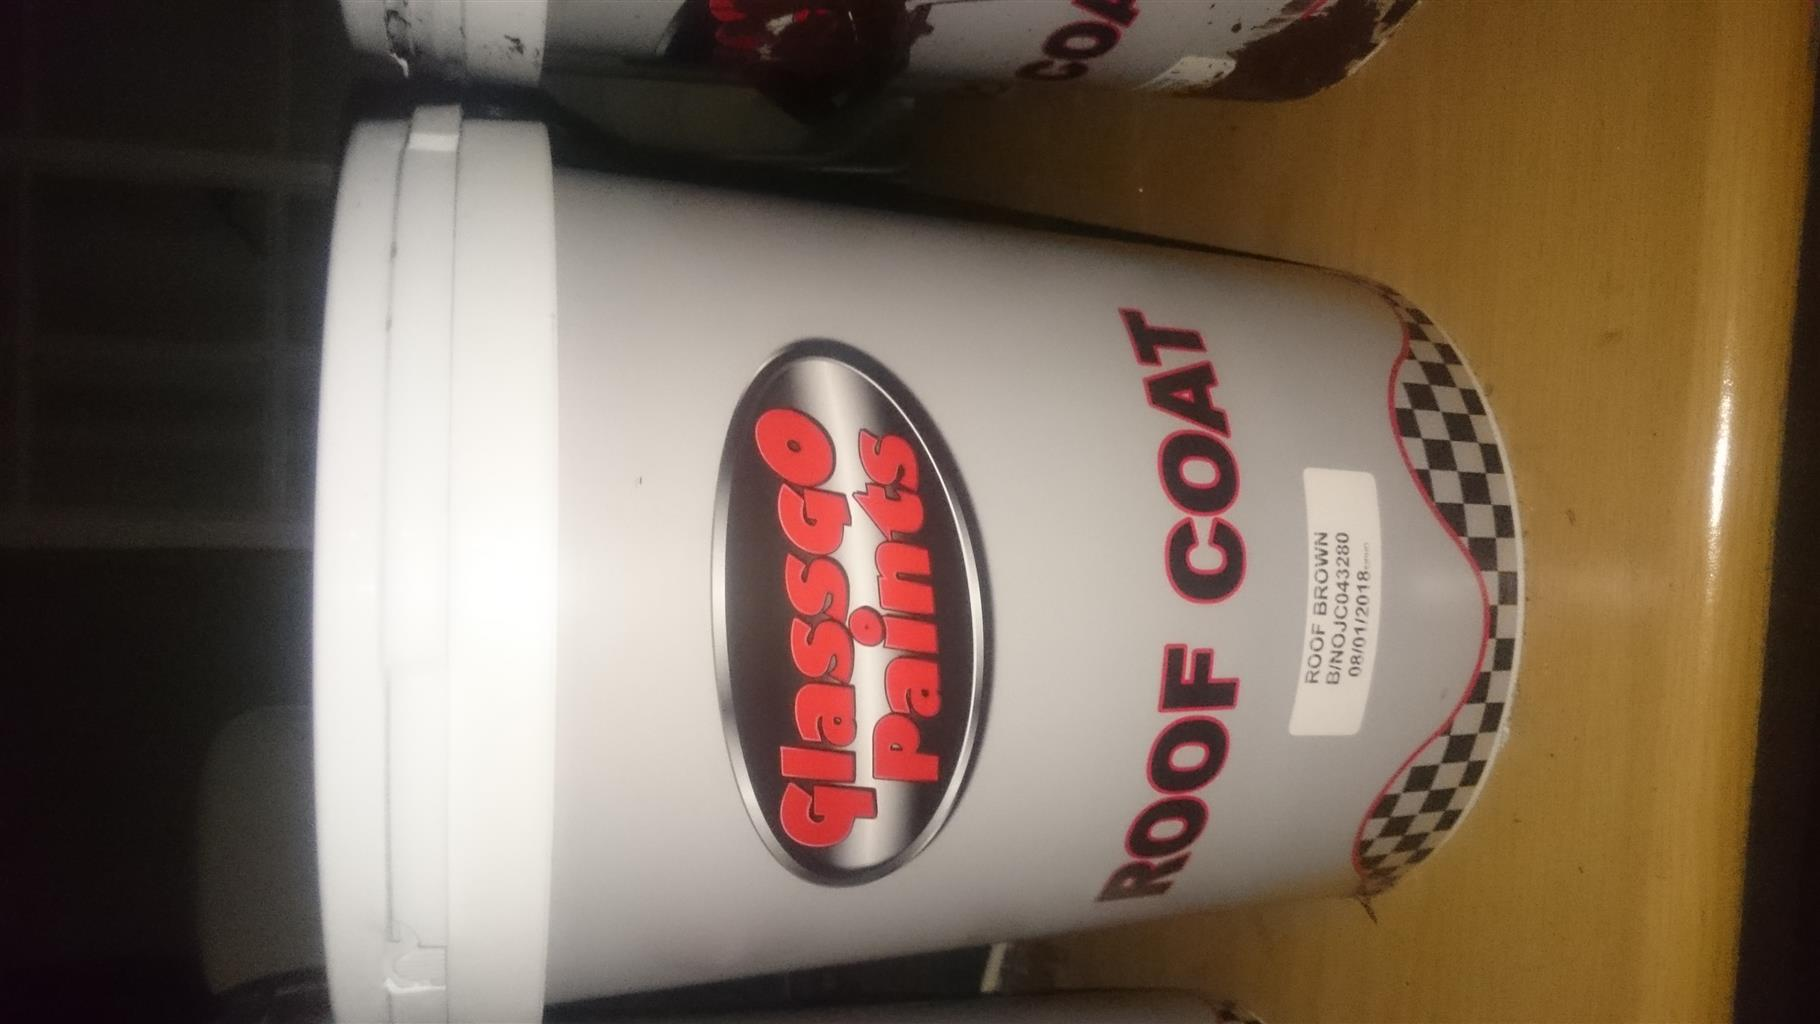 Brown roof paint 20 litre sealed tub x 2